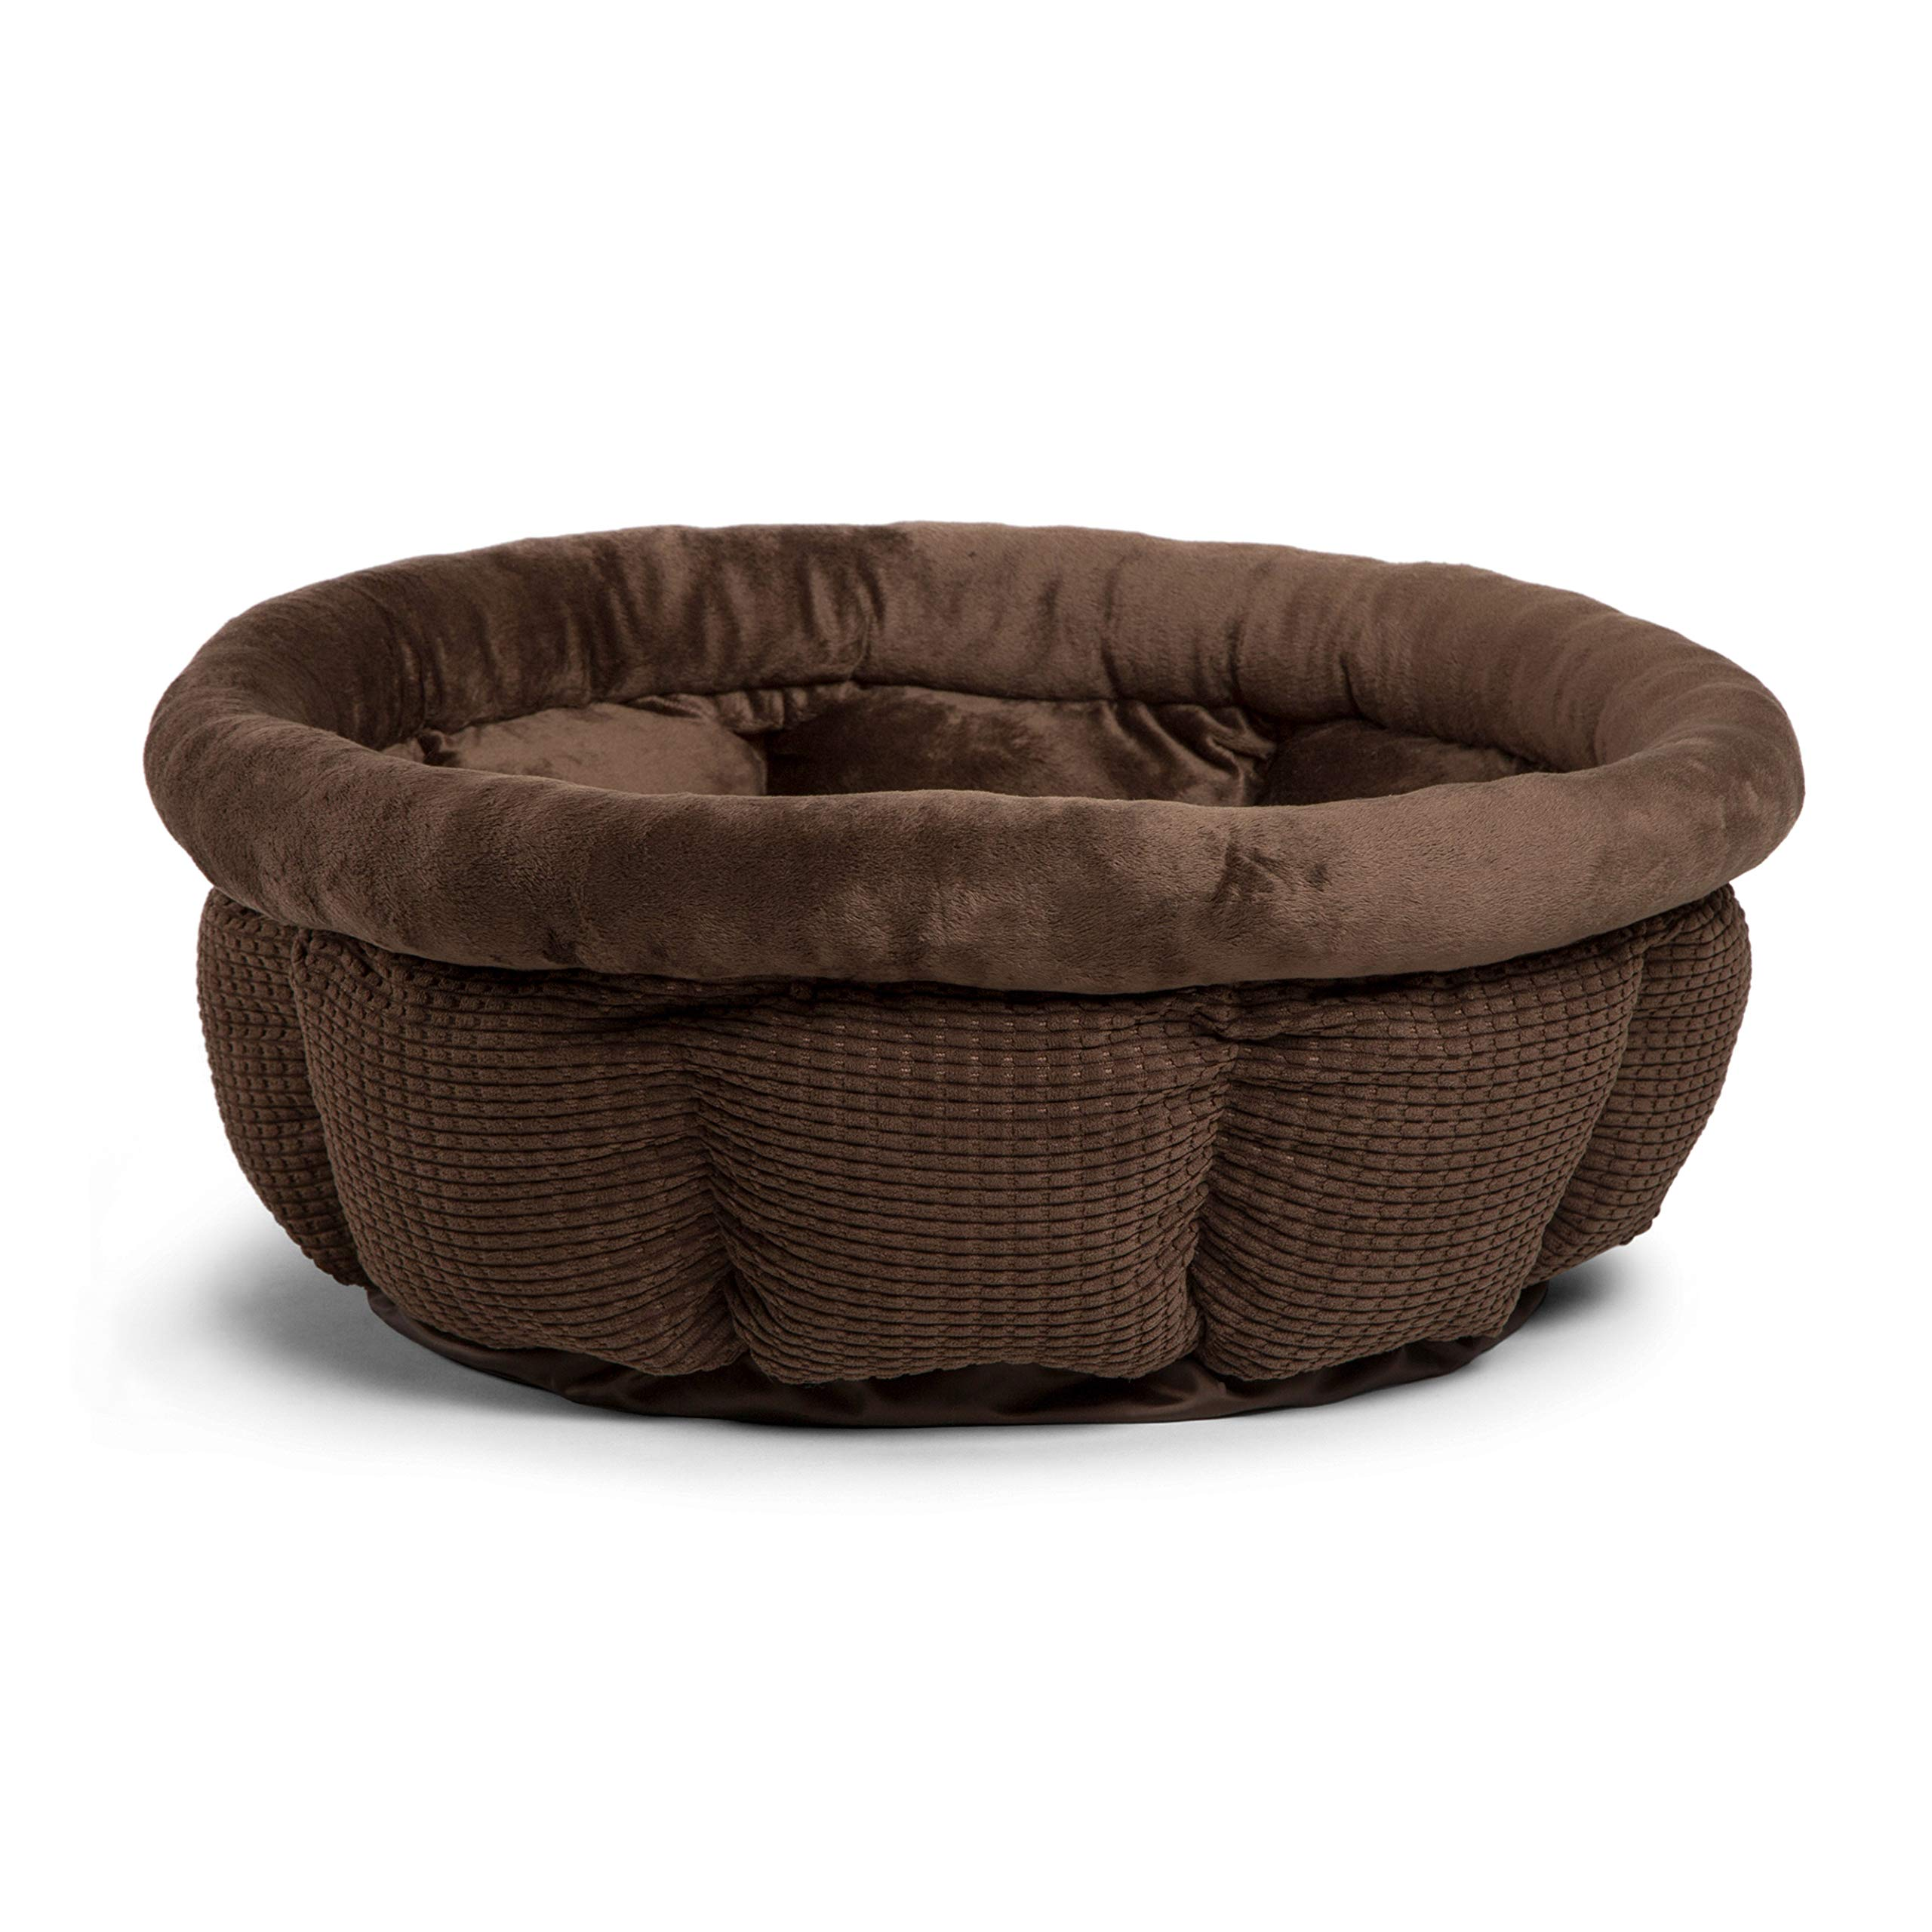 Best Friends by Sheri Jumbo Cup in Mason Dog Bed/Cat Bed, Dark Chocolate, Jumbo by Best Friends by Sheri